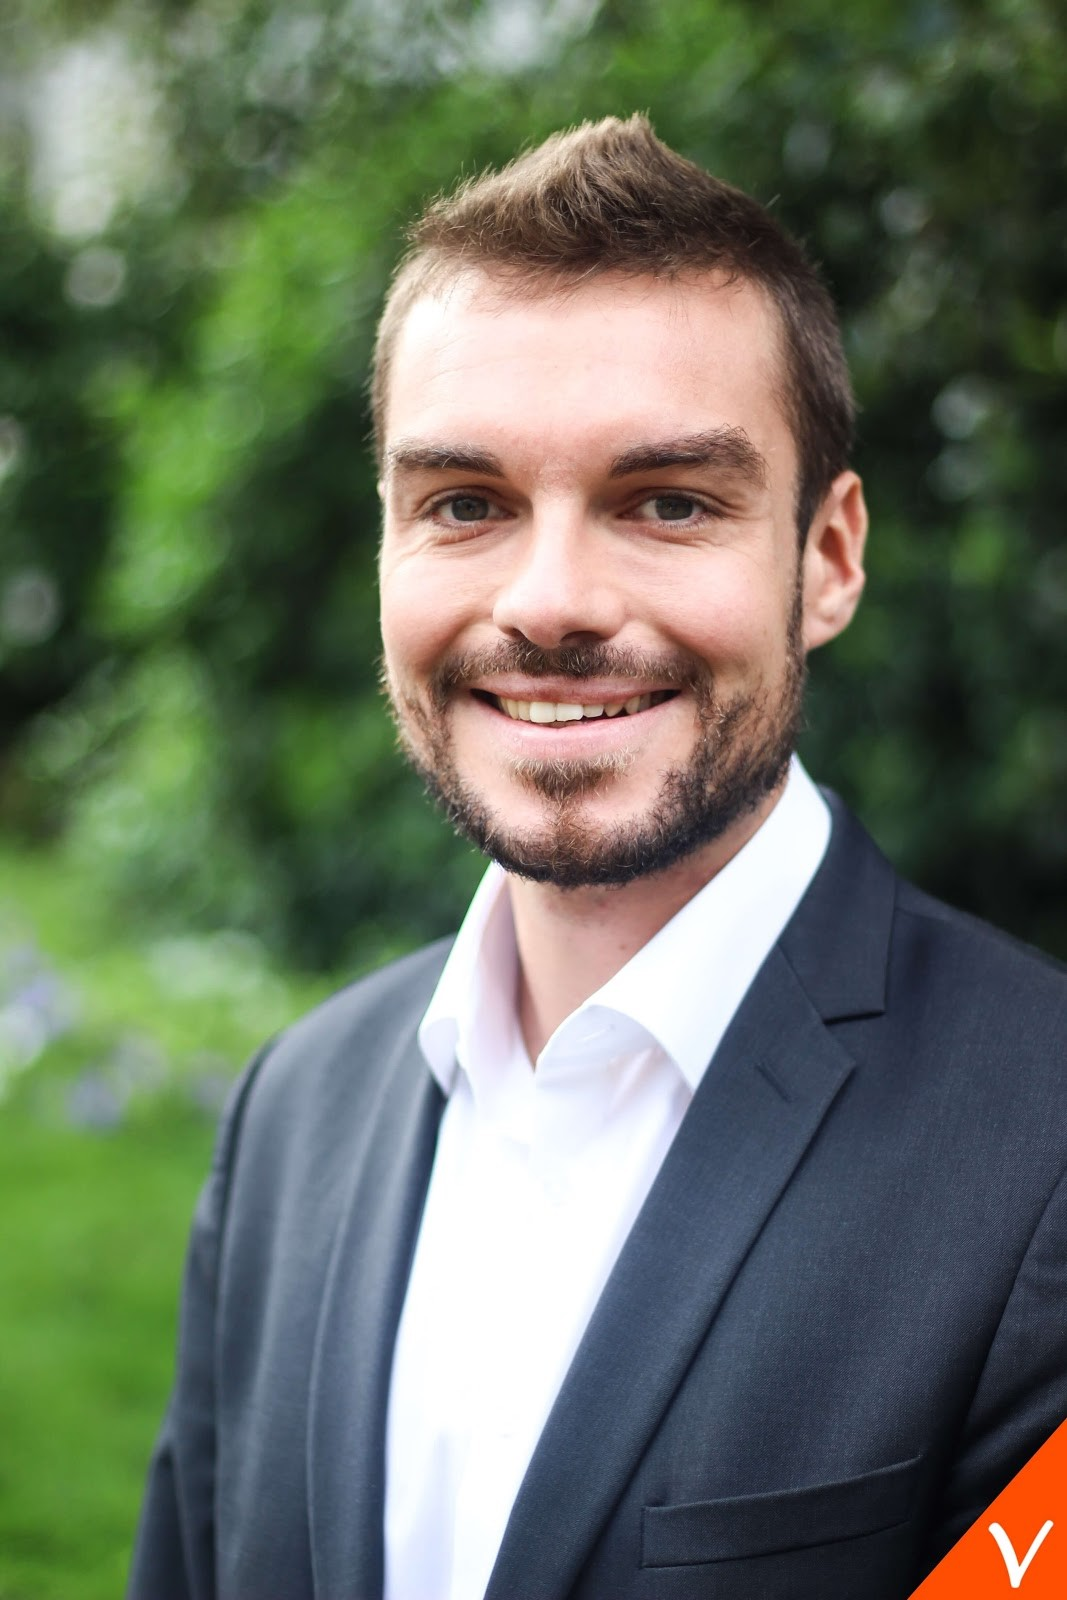 Simon Vandendriessche - COO & Co-Founder